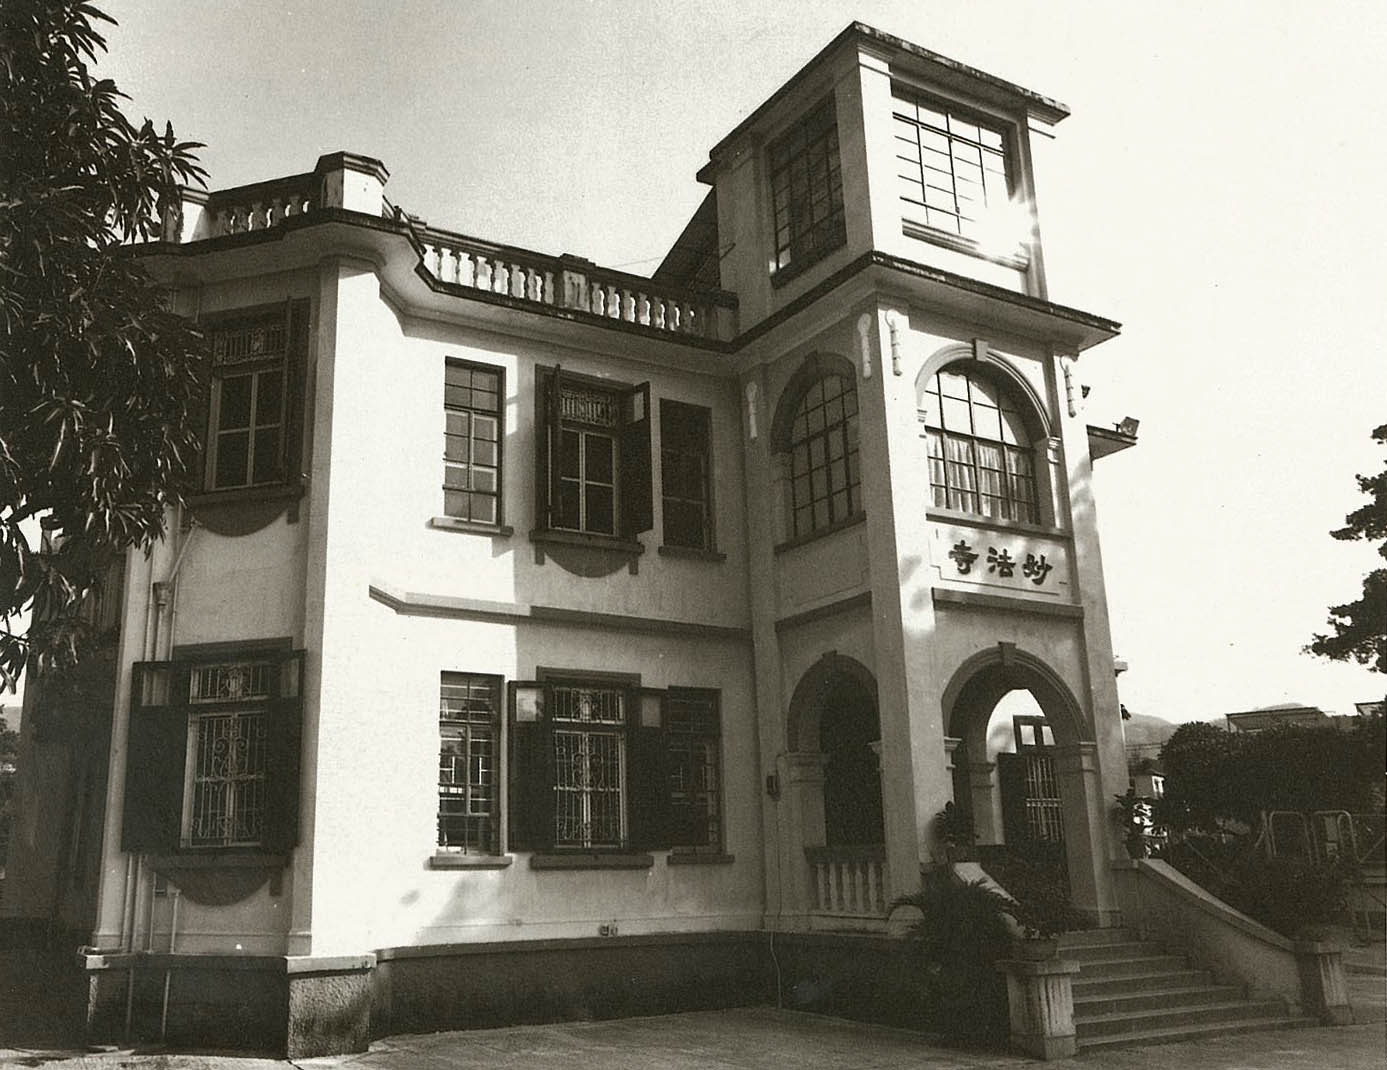 - The main building of the 'Cheung Yuen' villa